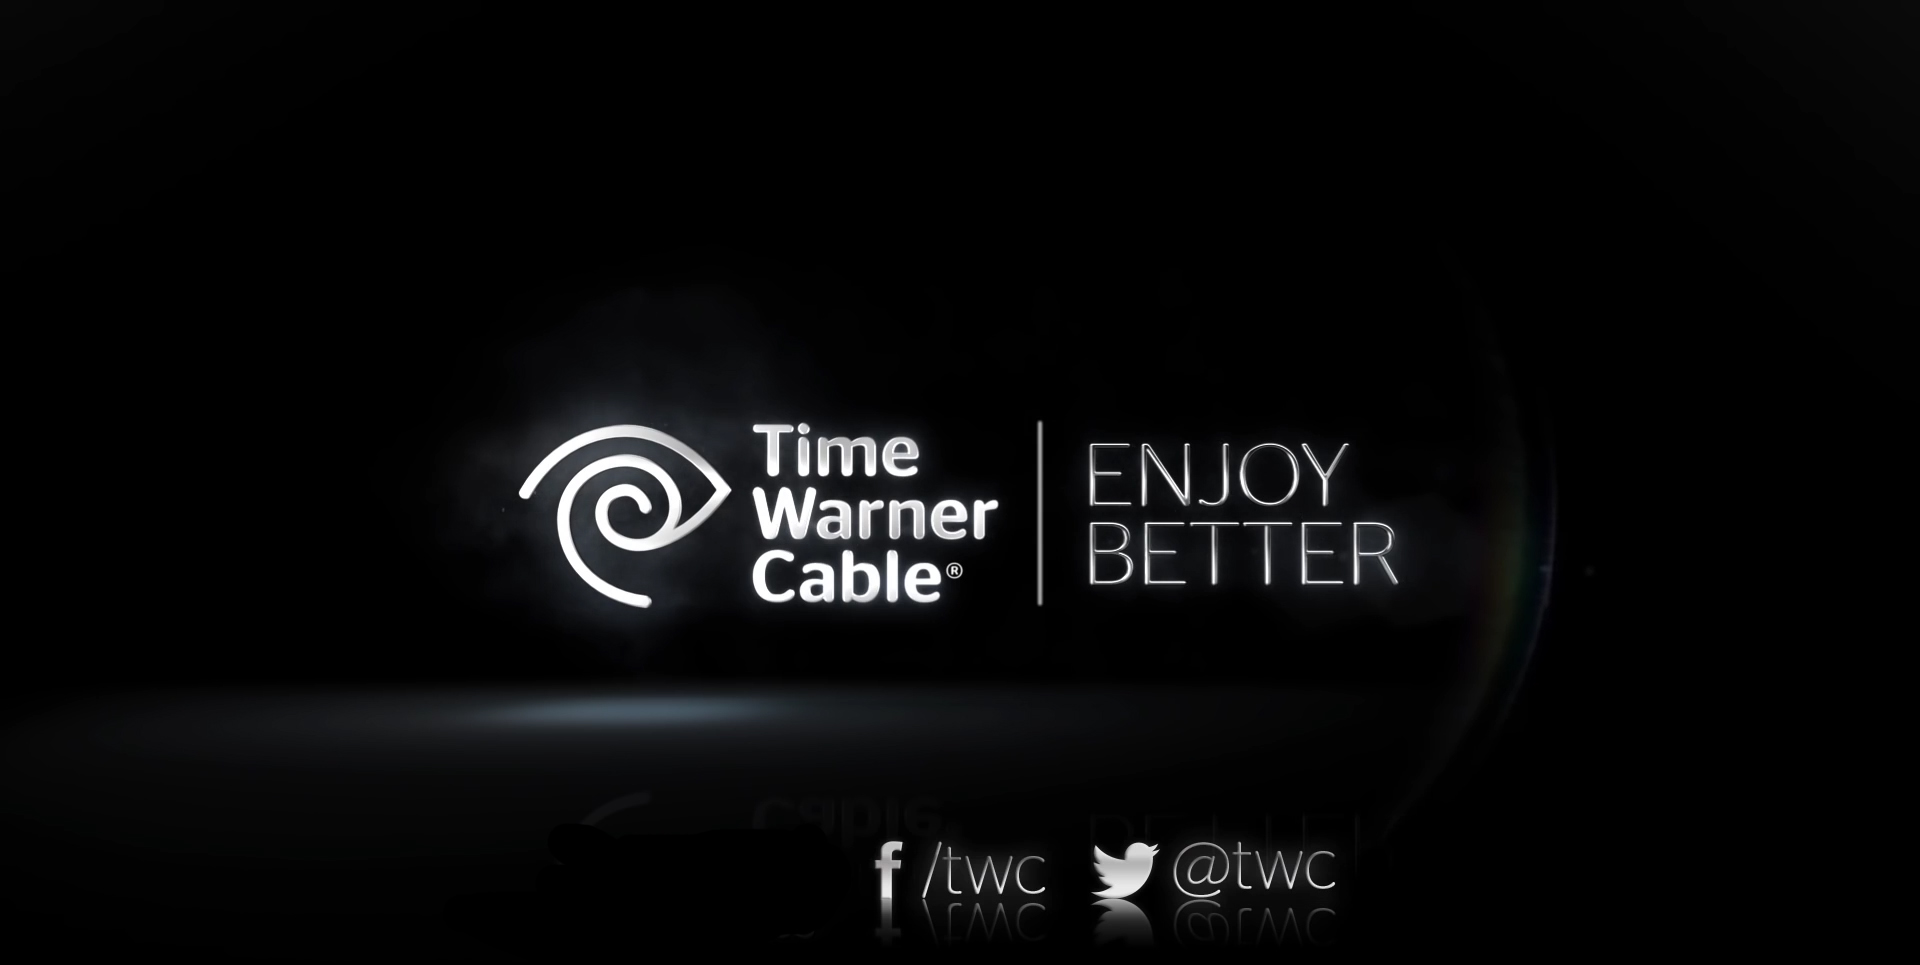 brand slogans time warner cable